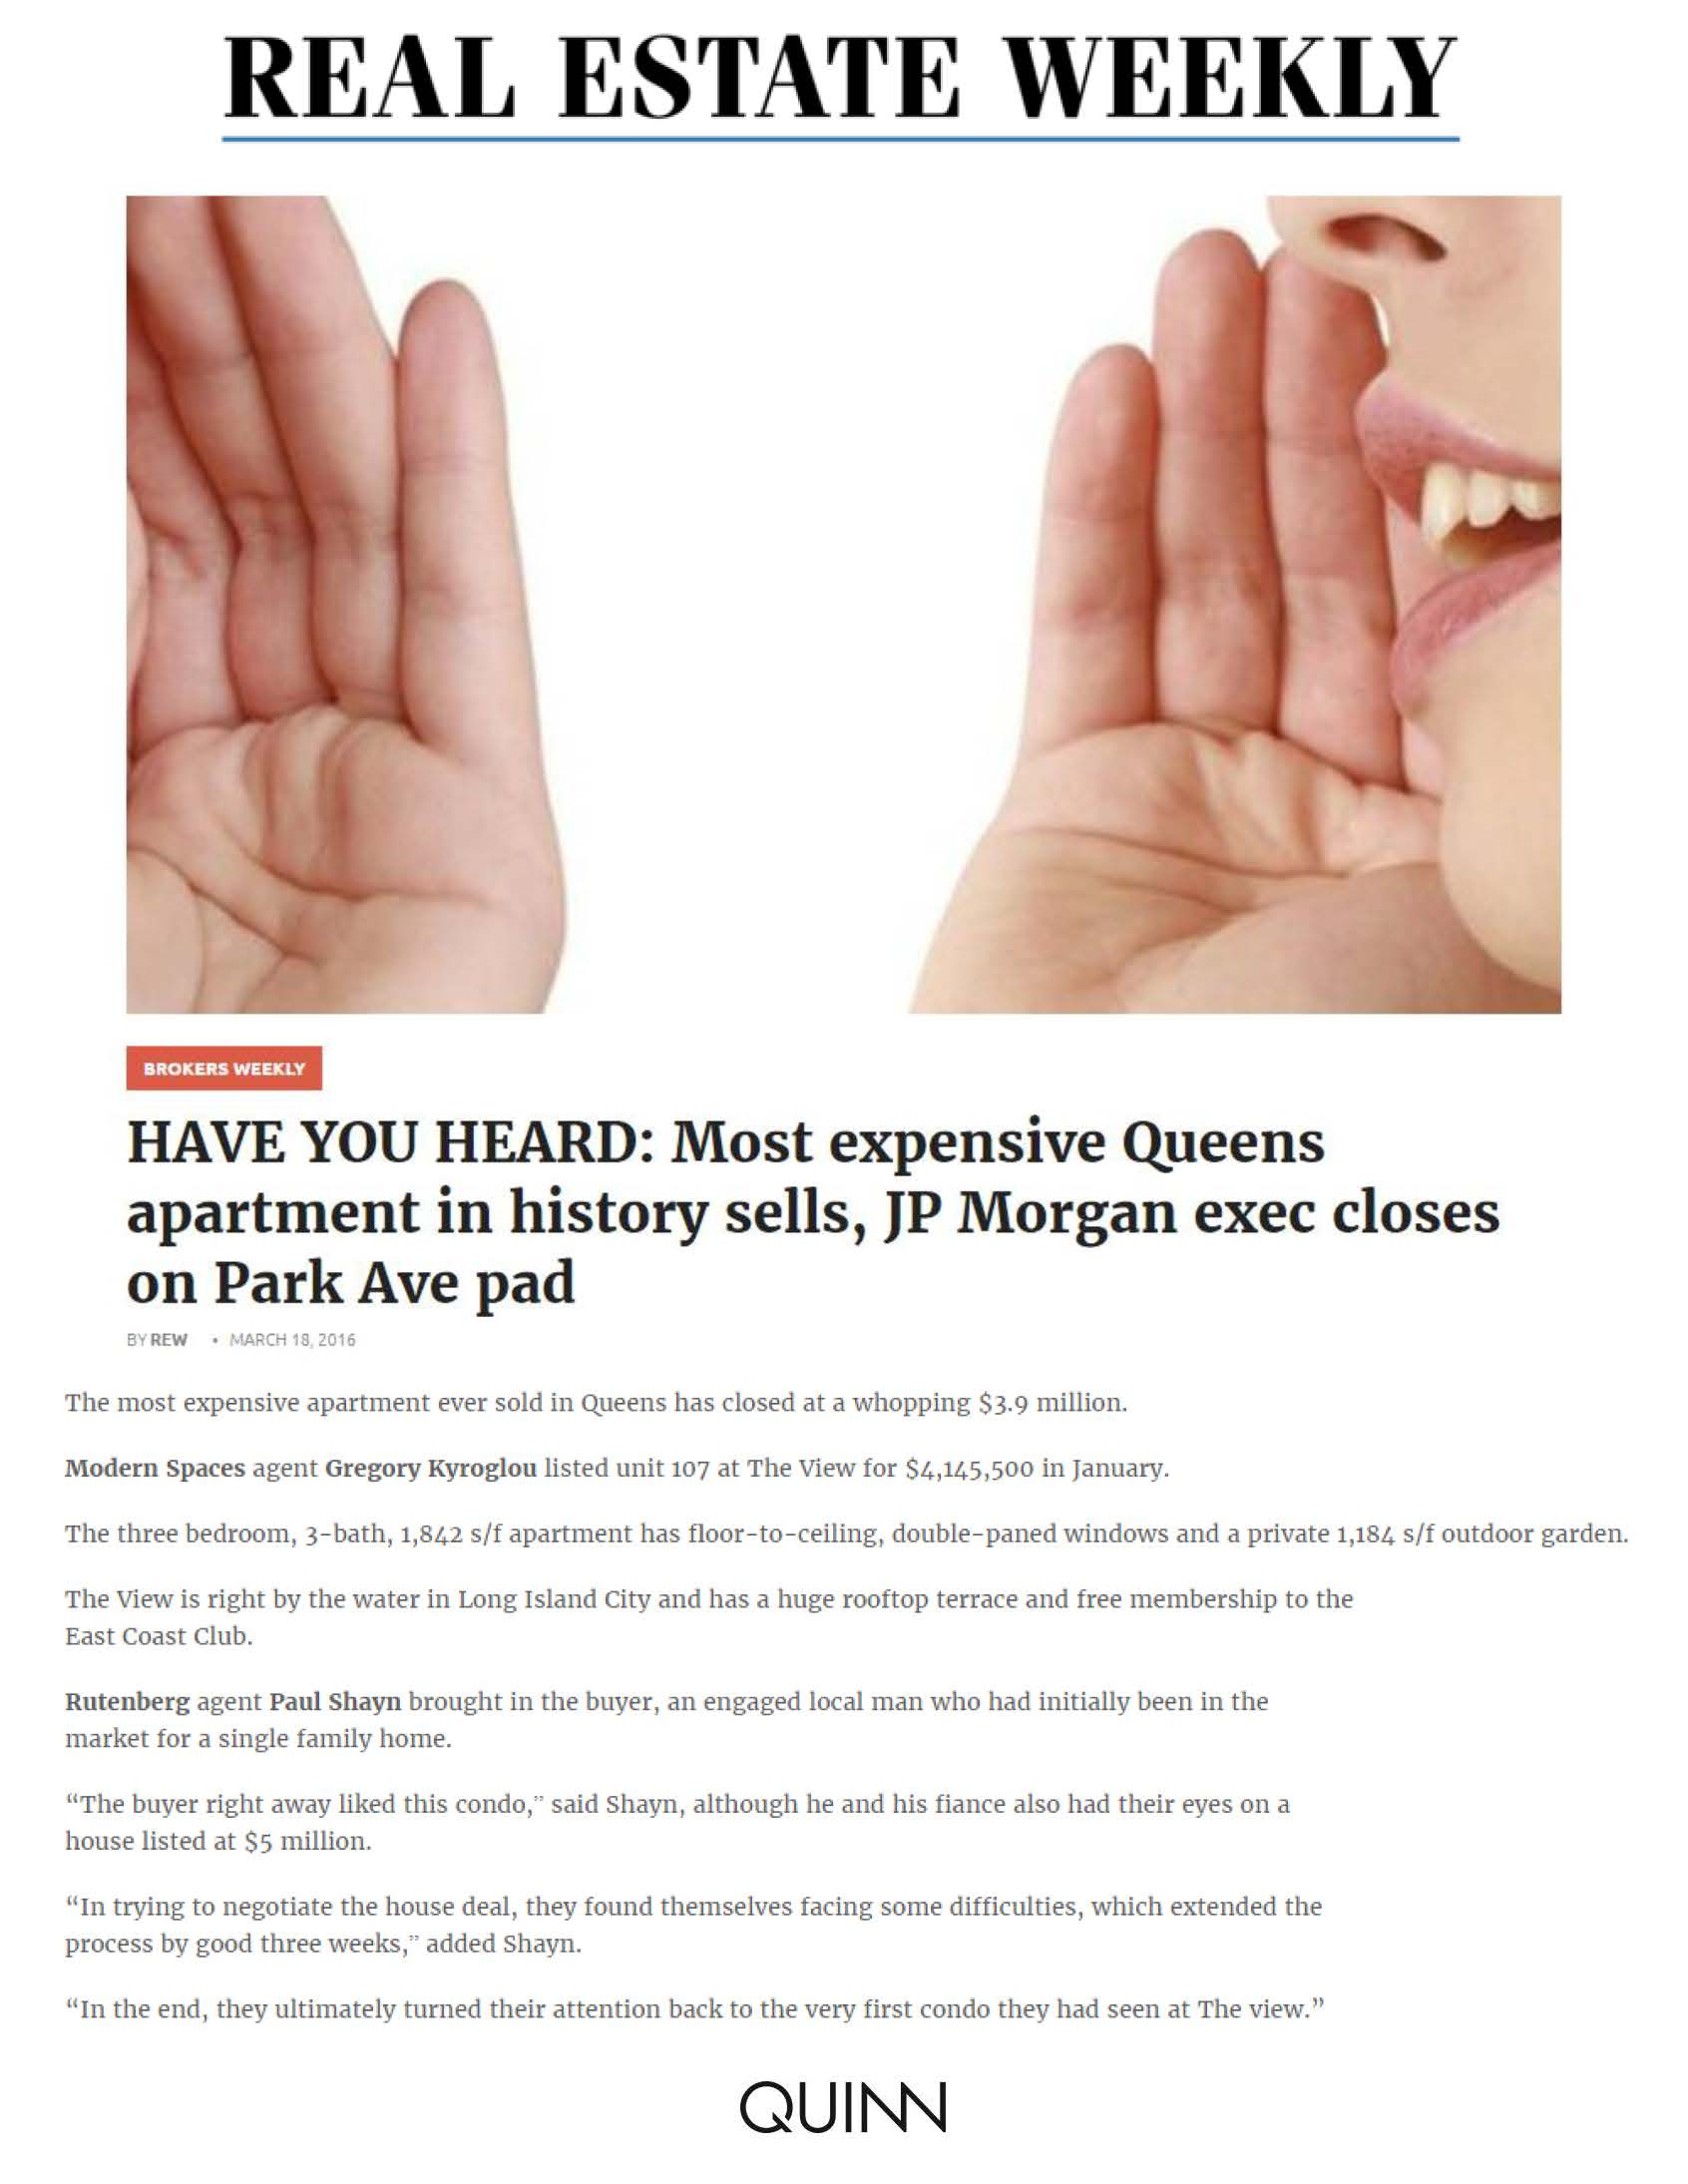 Real Estate Weekly - HAVE YOU HEARD Most expensive Queens apartment in h... (2)